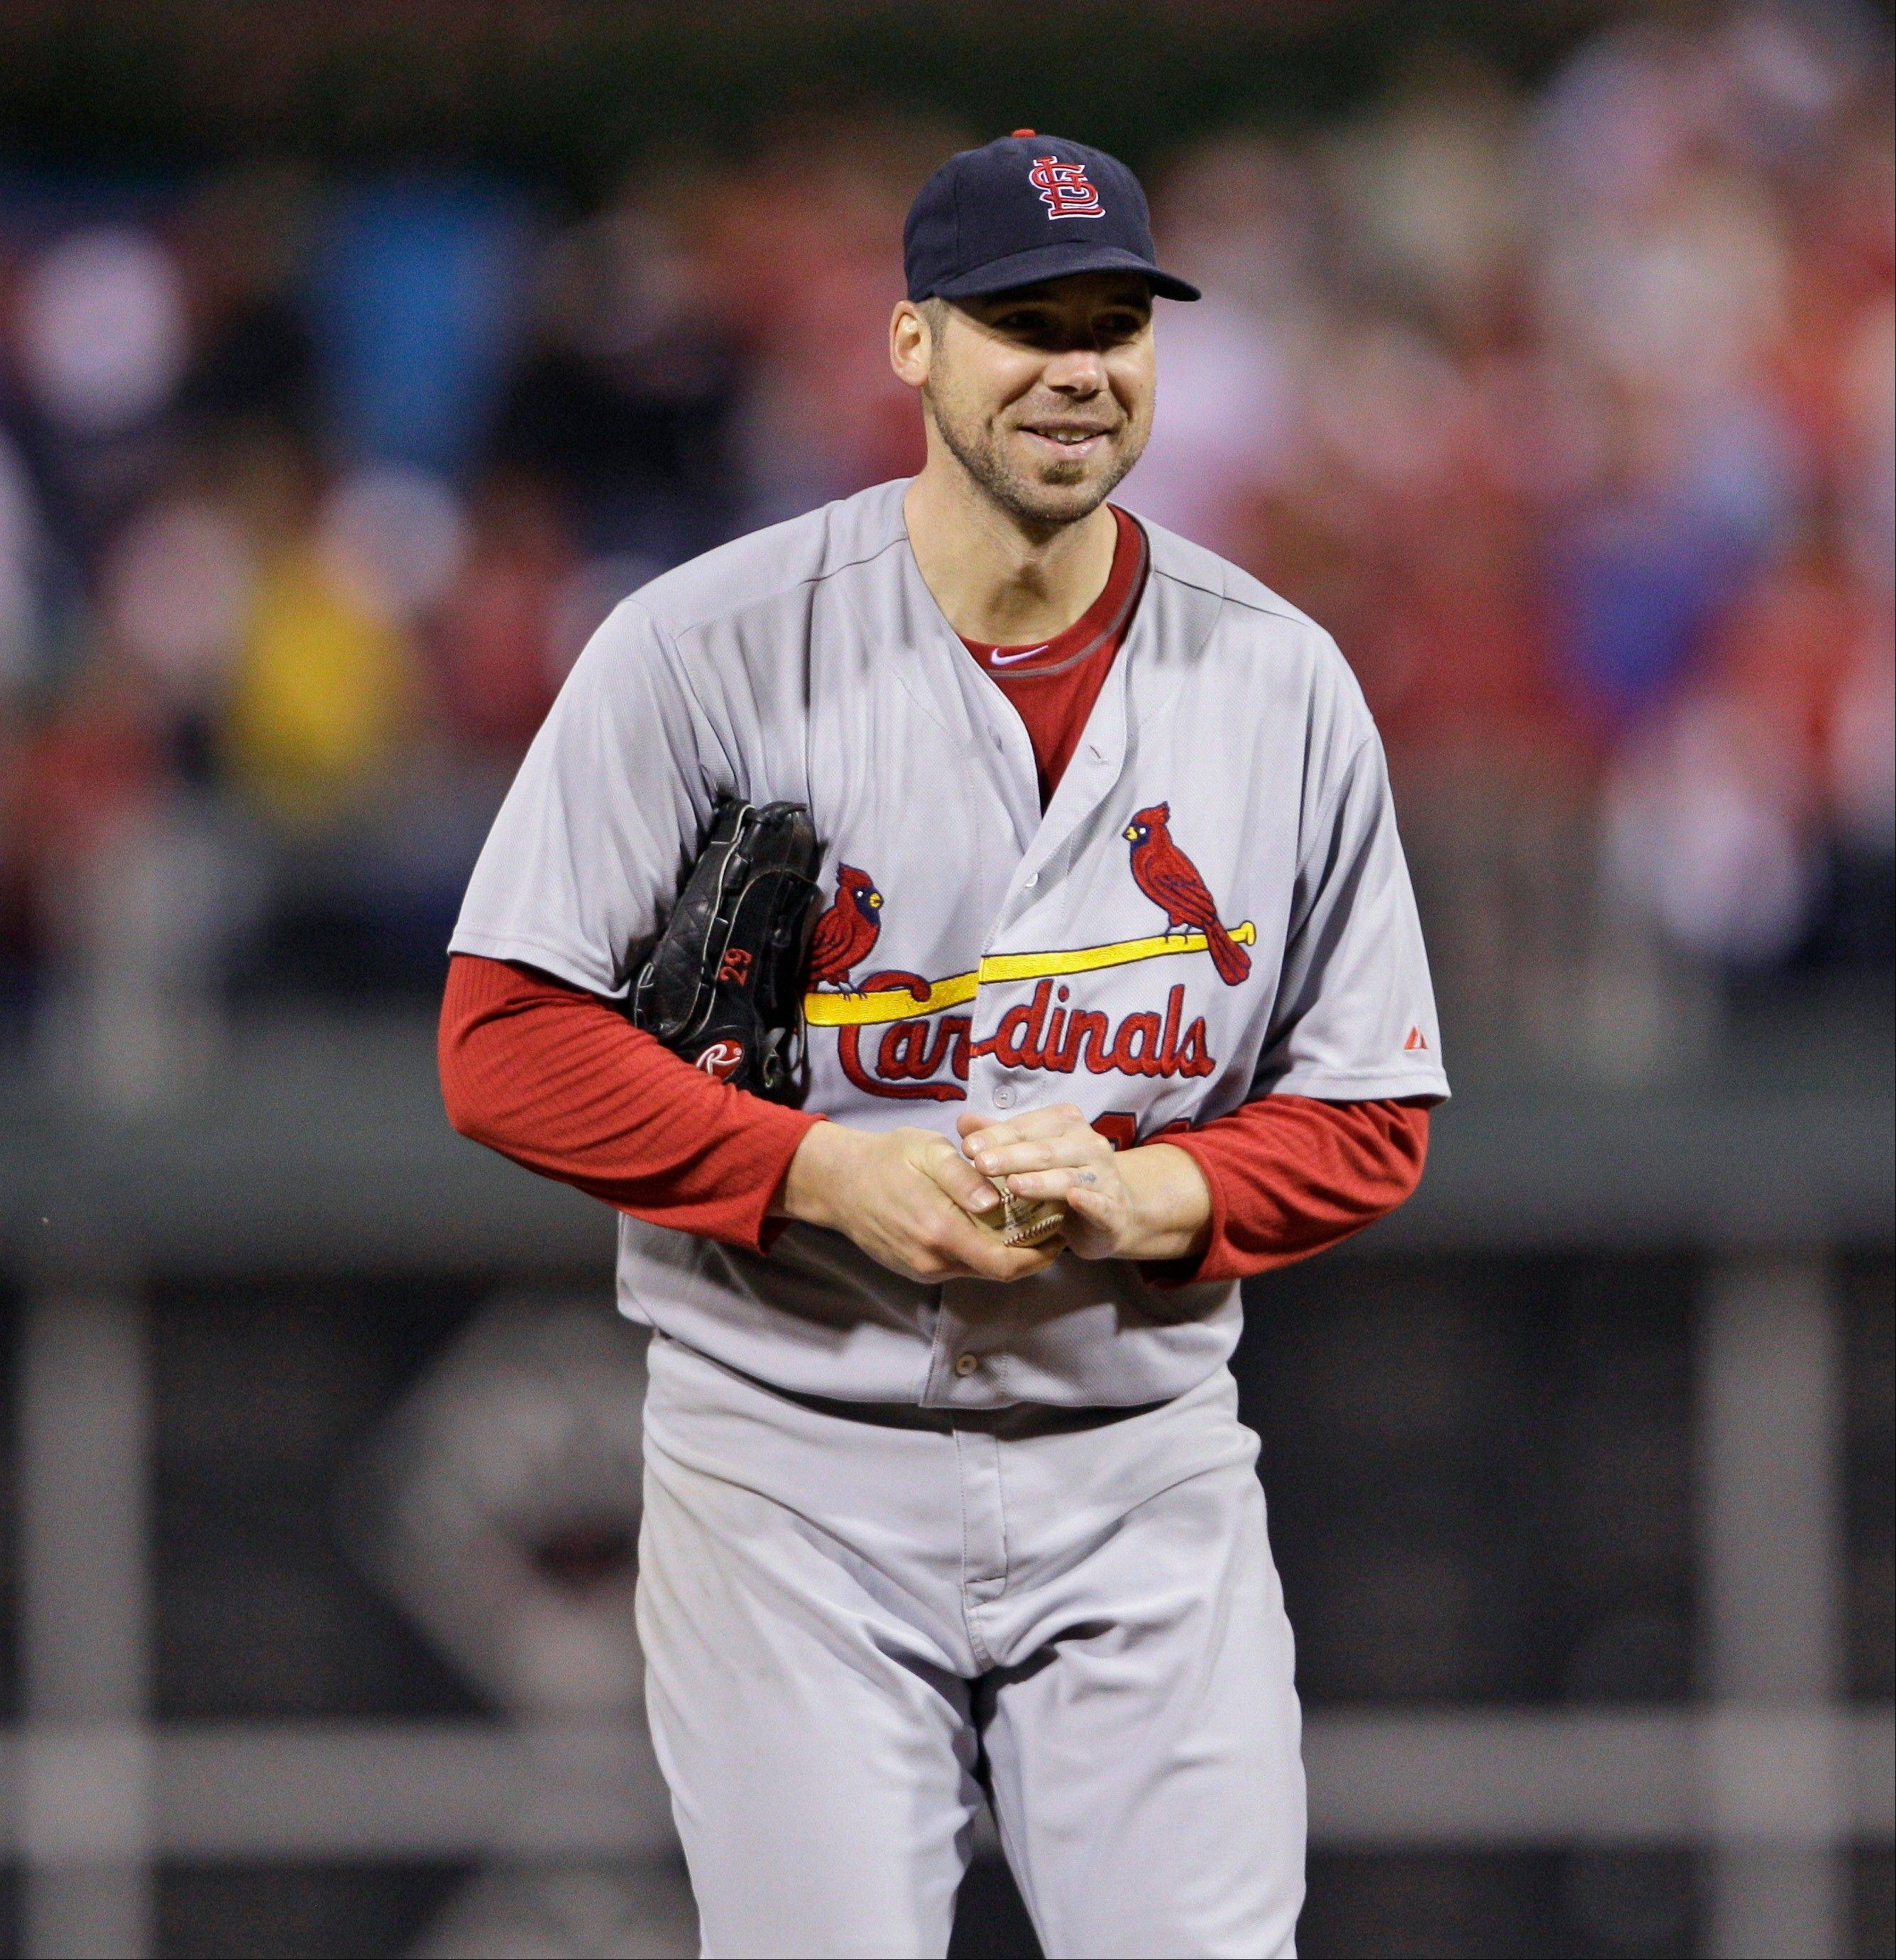 The Cardinals announced Friday that ace Chris Carpenter has nerve irritation that has caused weakness in his pitching shoulder.